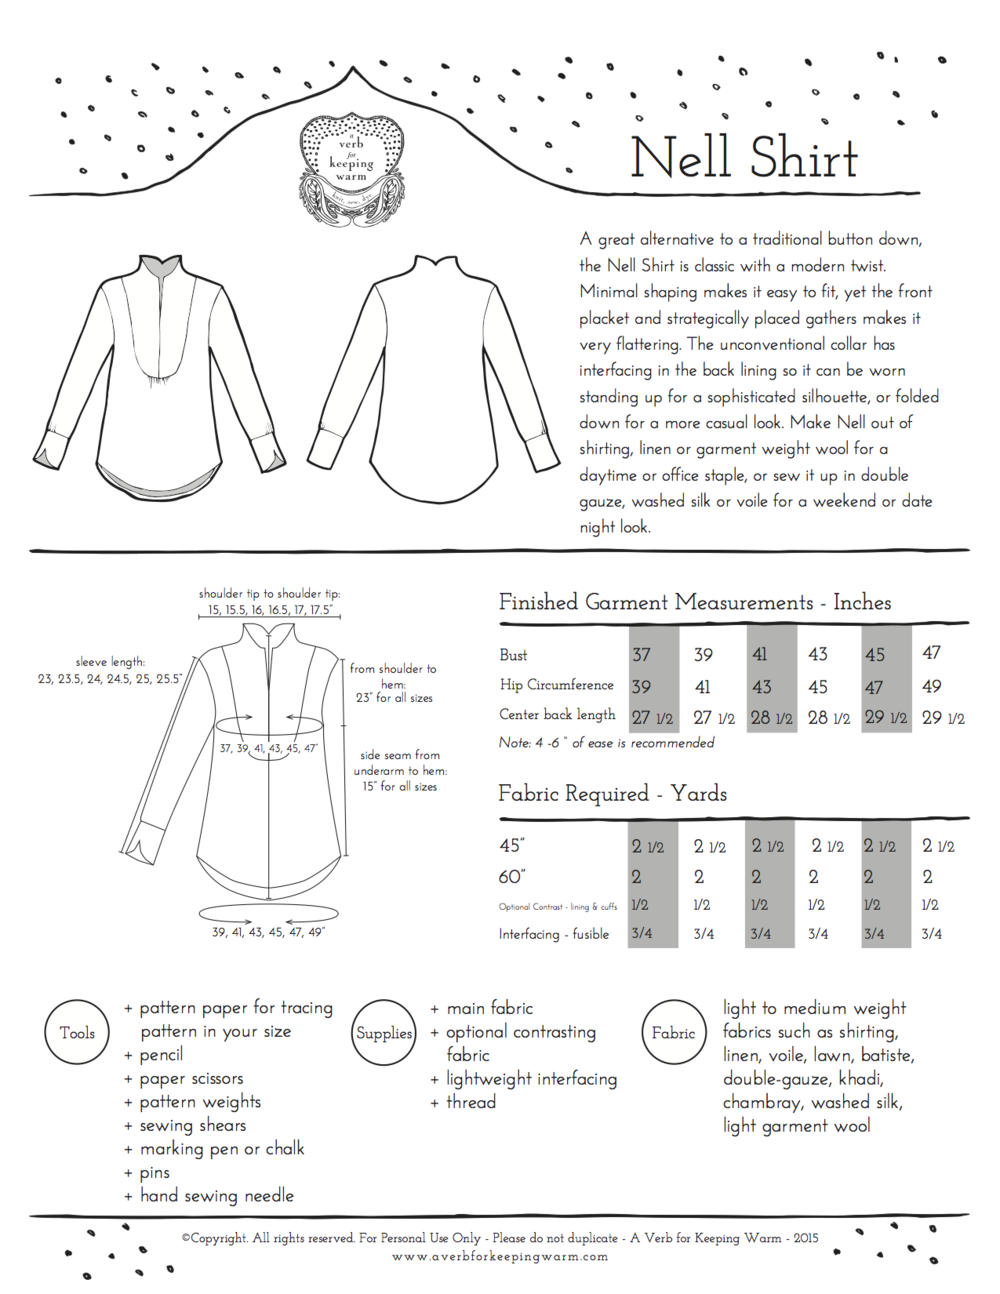 nell-shirt-a-verb-for-keeping-warm.png